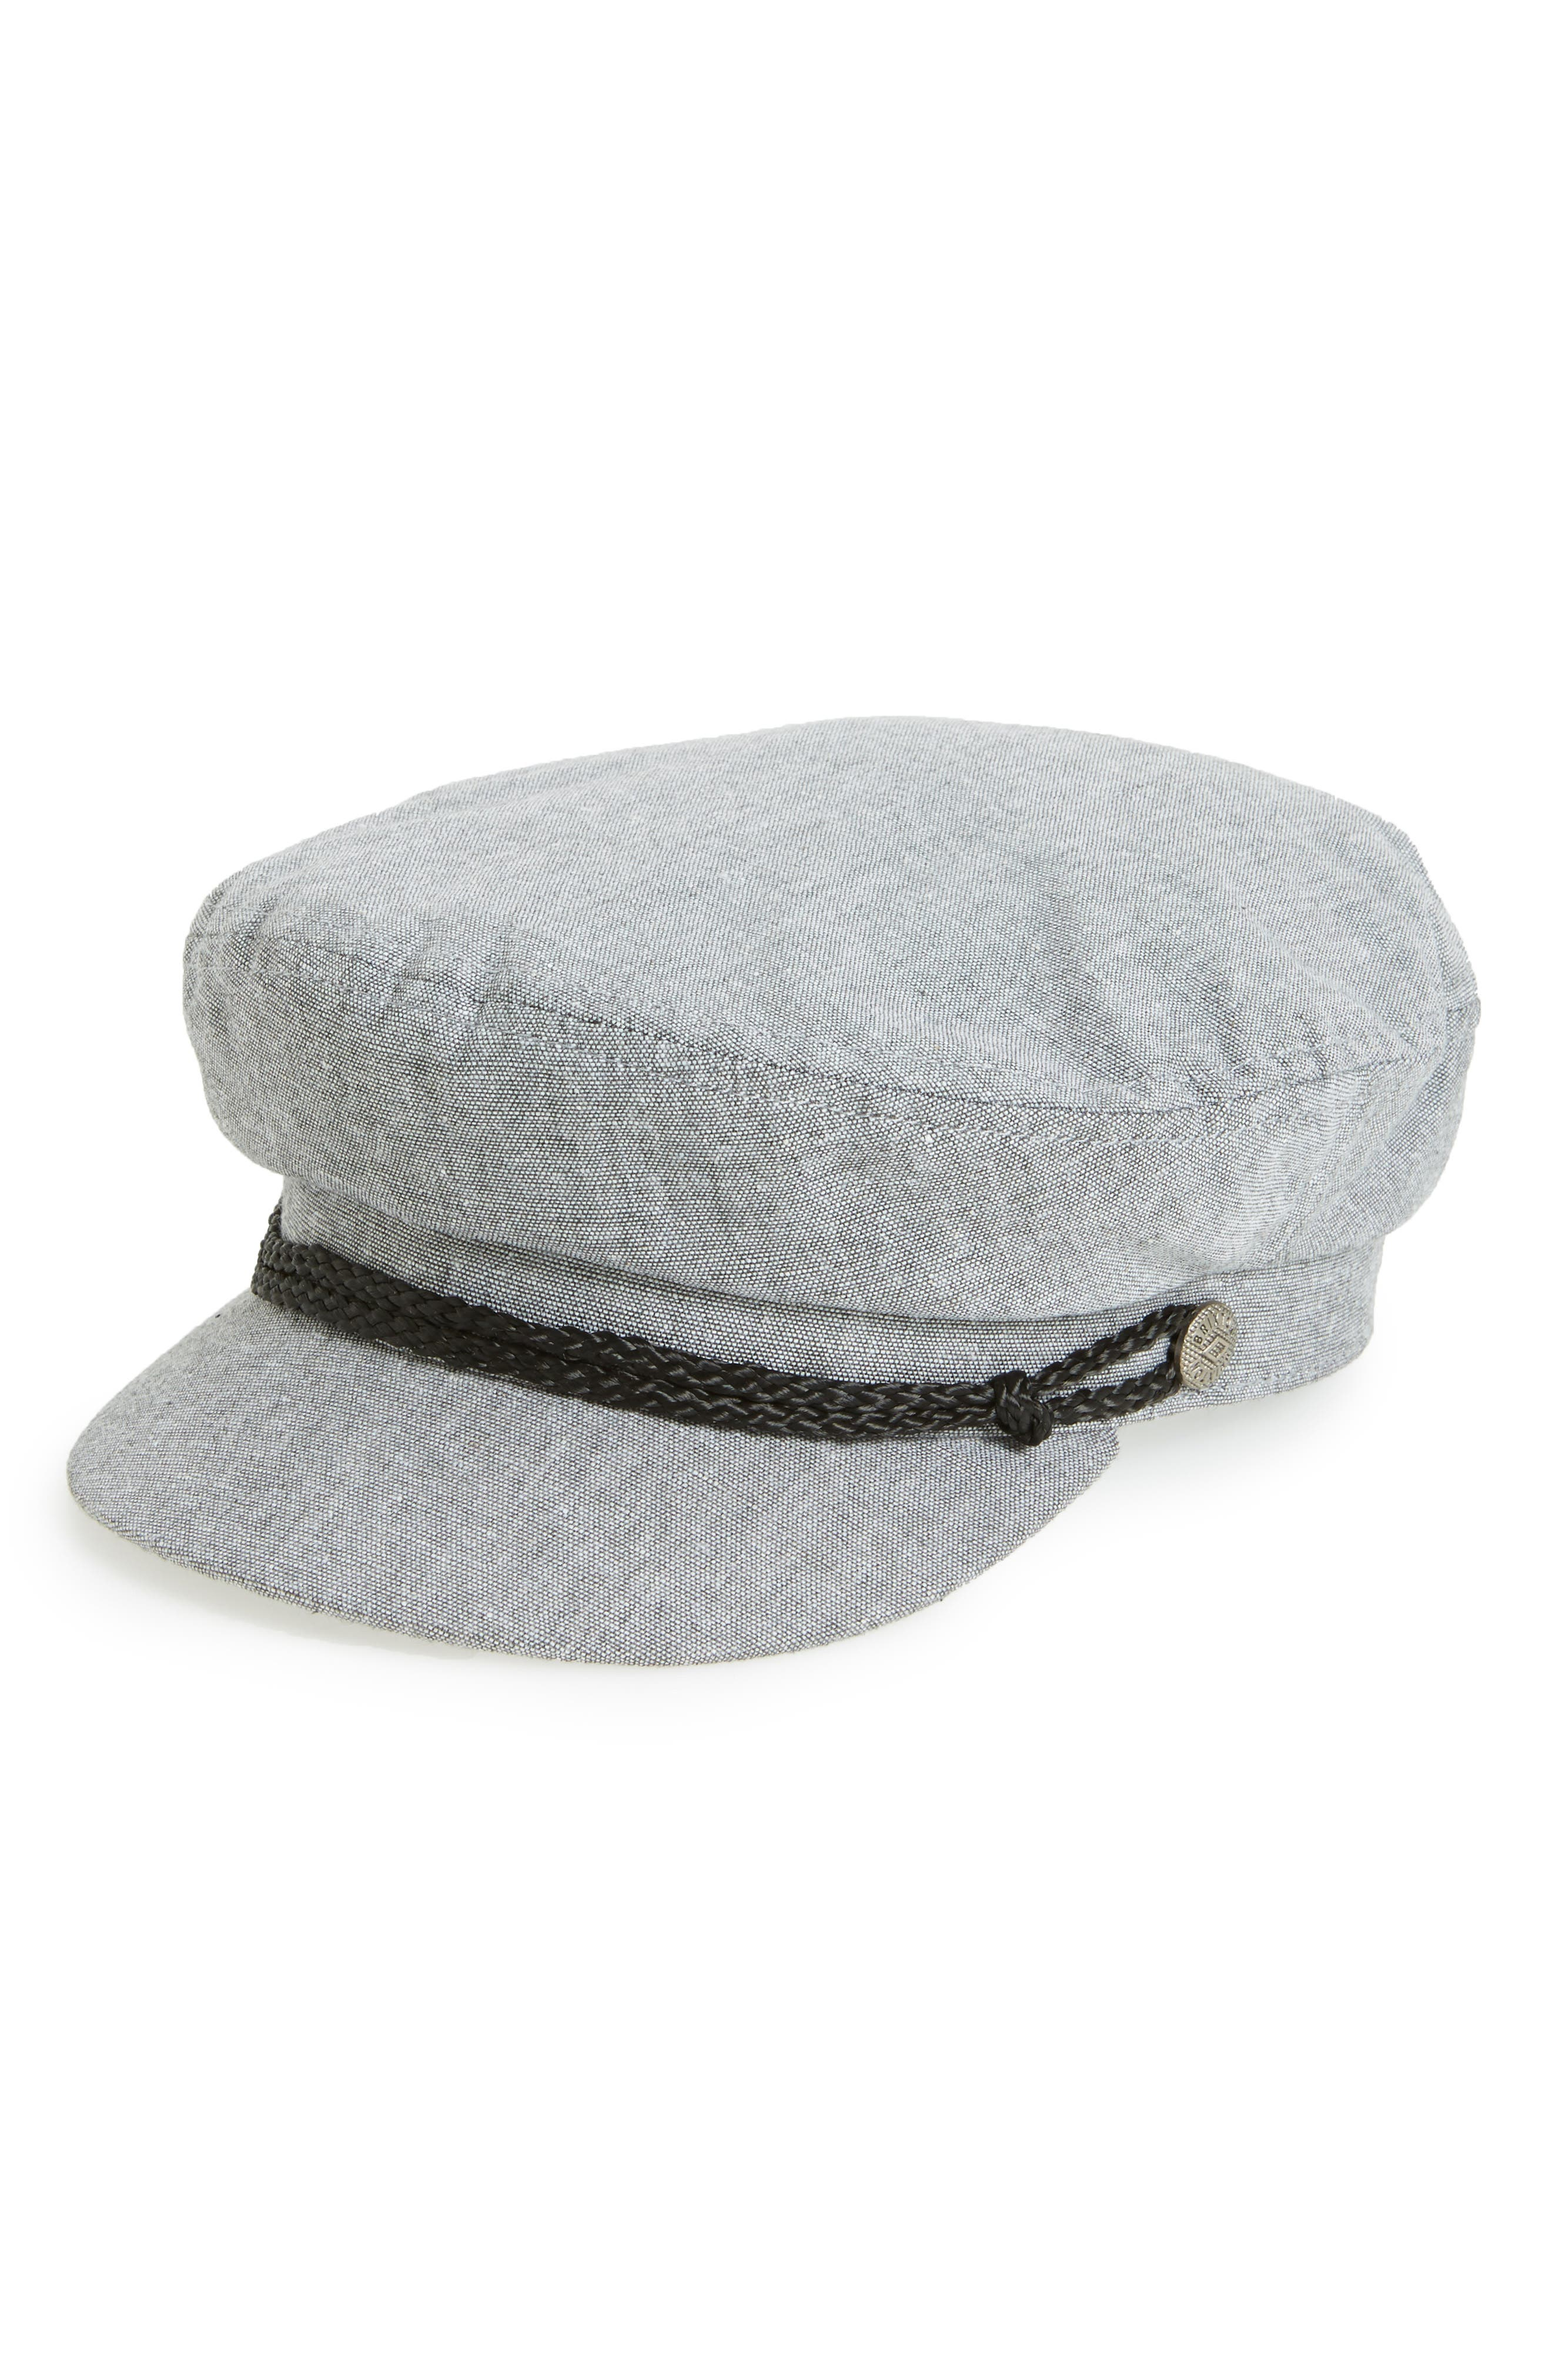 Fiddler Fisherman Cap,                         Main,                         color, Grey Chambray